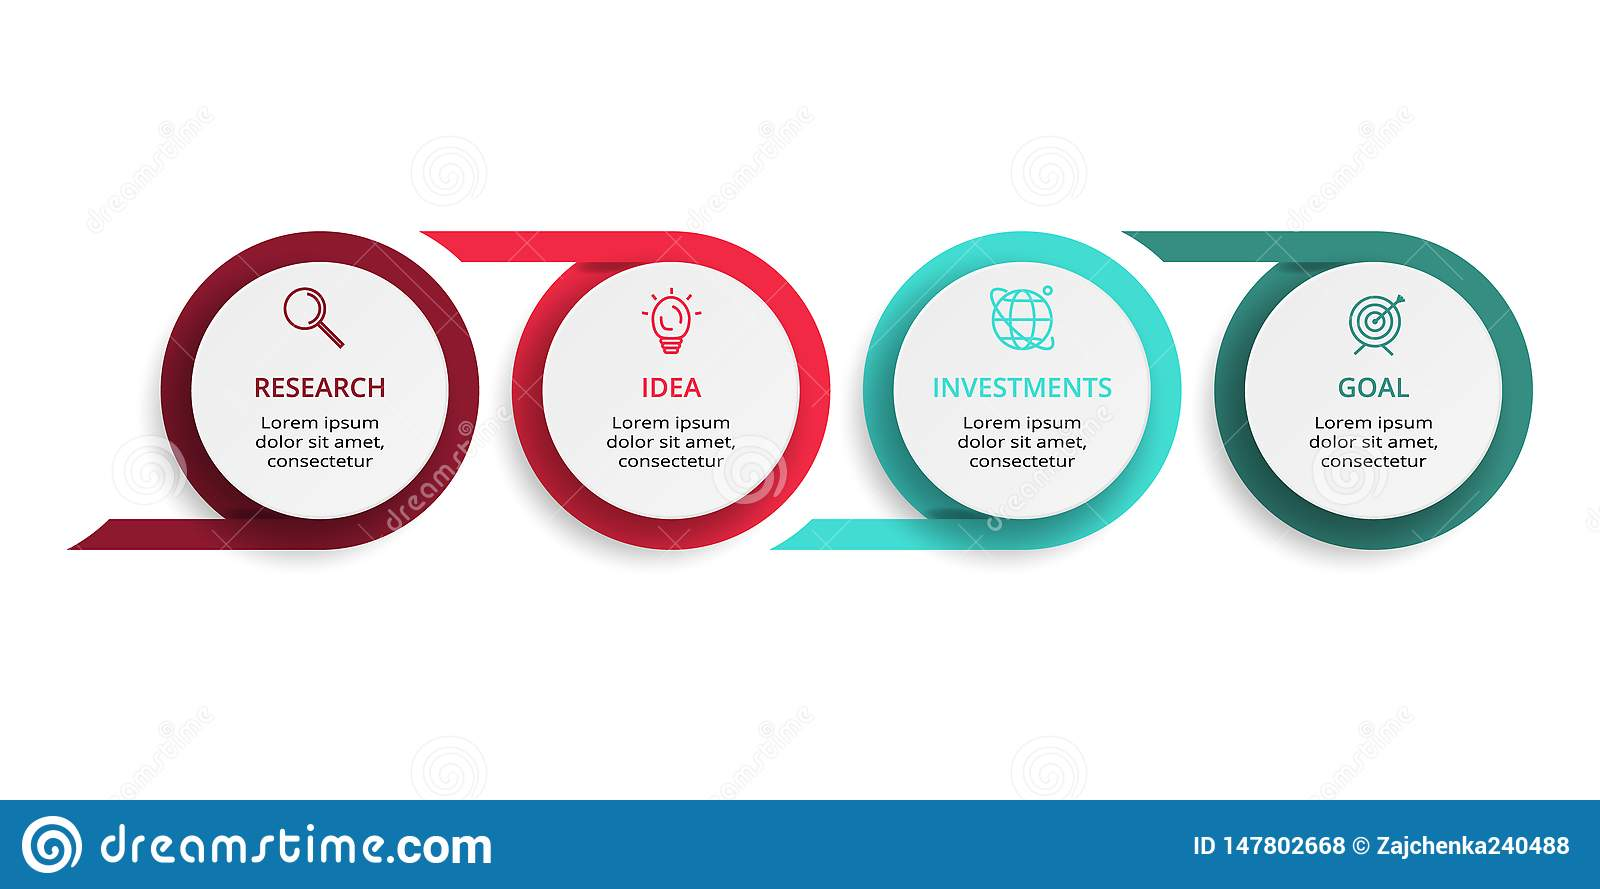 Infographic design vector and marketing icons for diagram, graph, presentation and round chart. Concept with 4 options